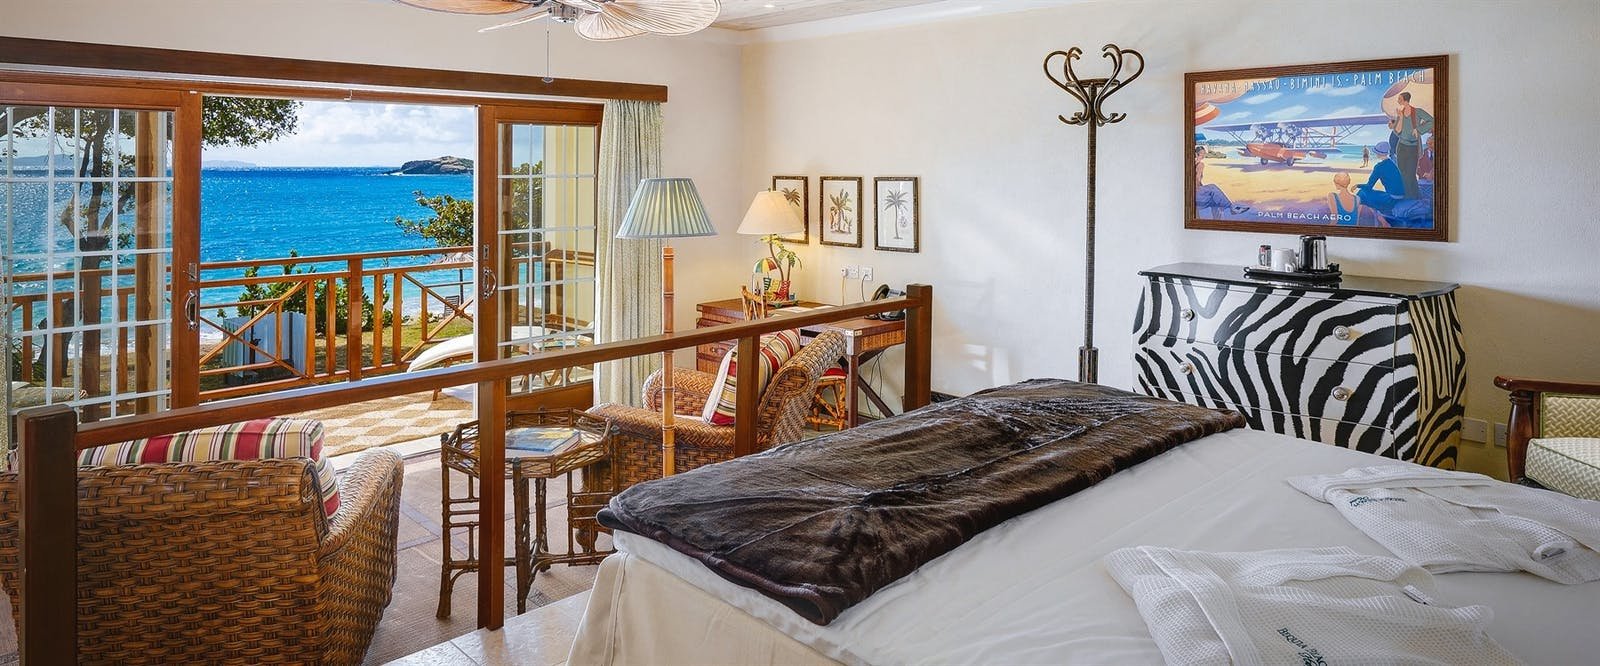 Beachfront Suite at Bequia Beach Hotel, St Vincent and The Grenadines